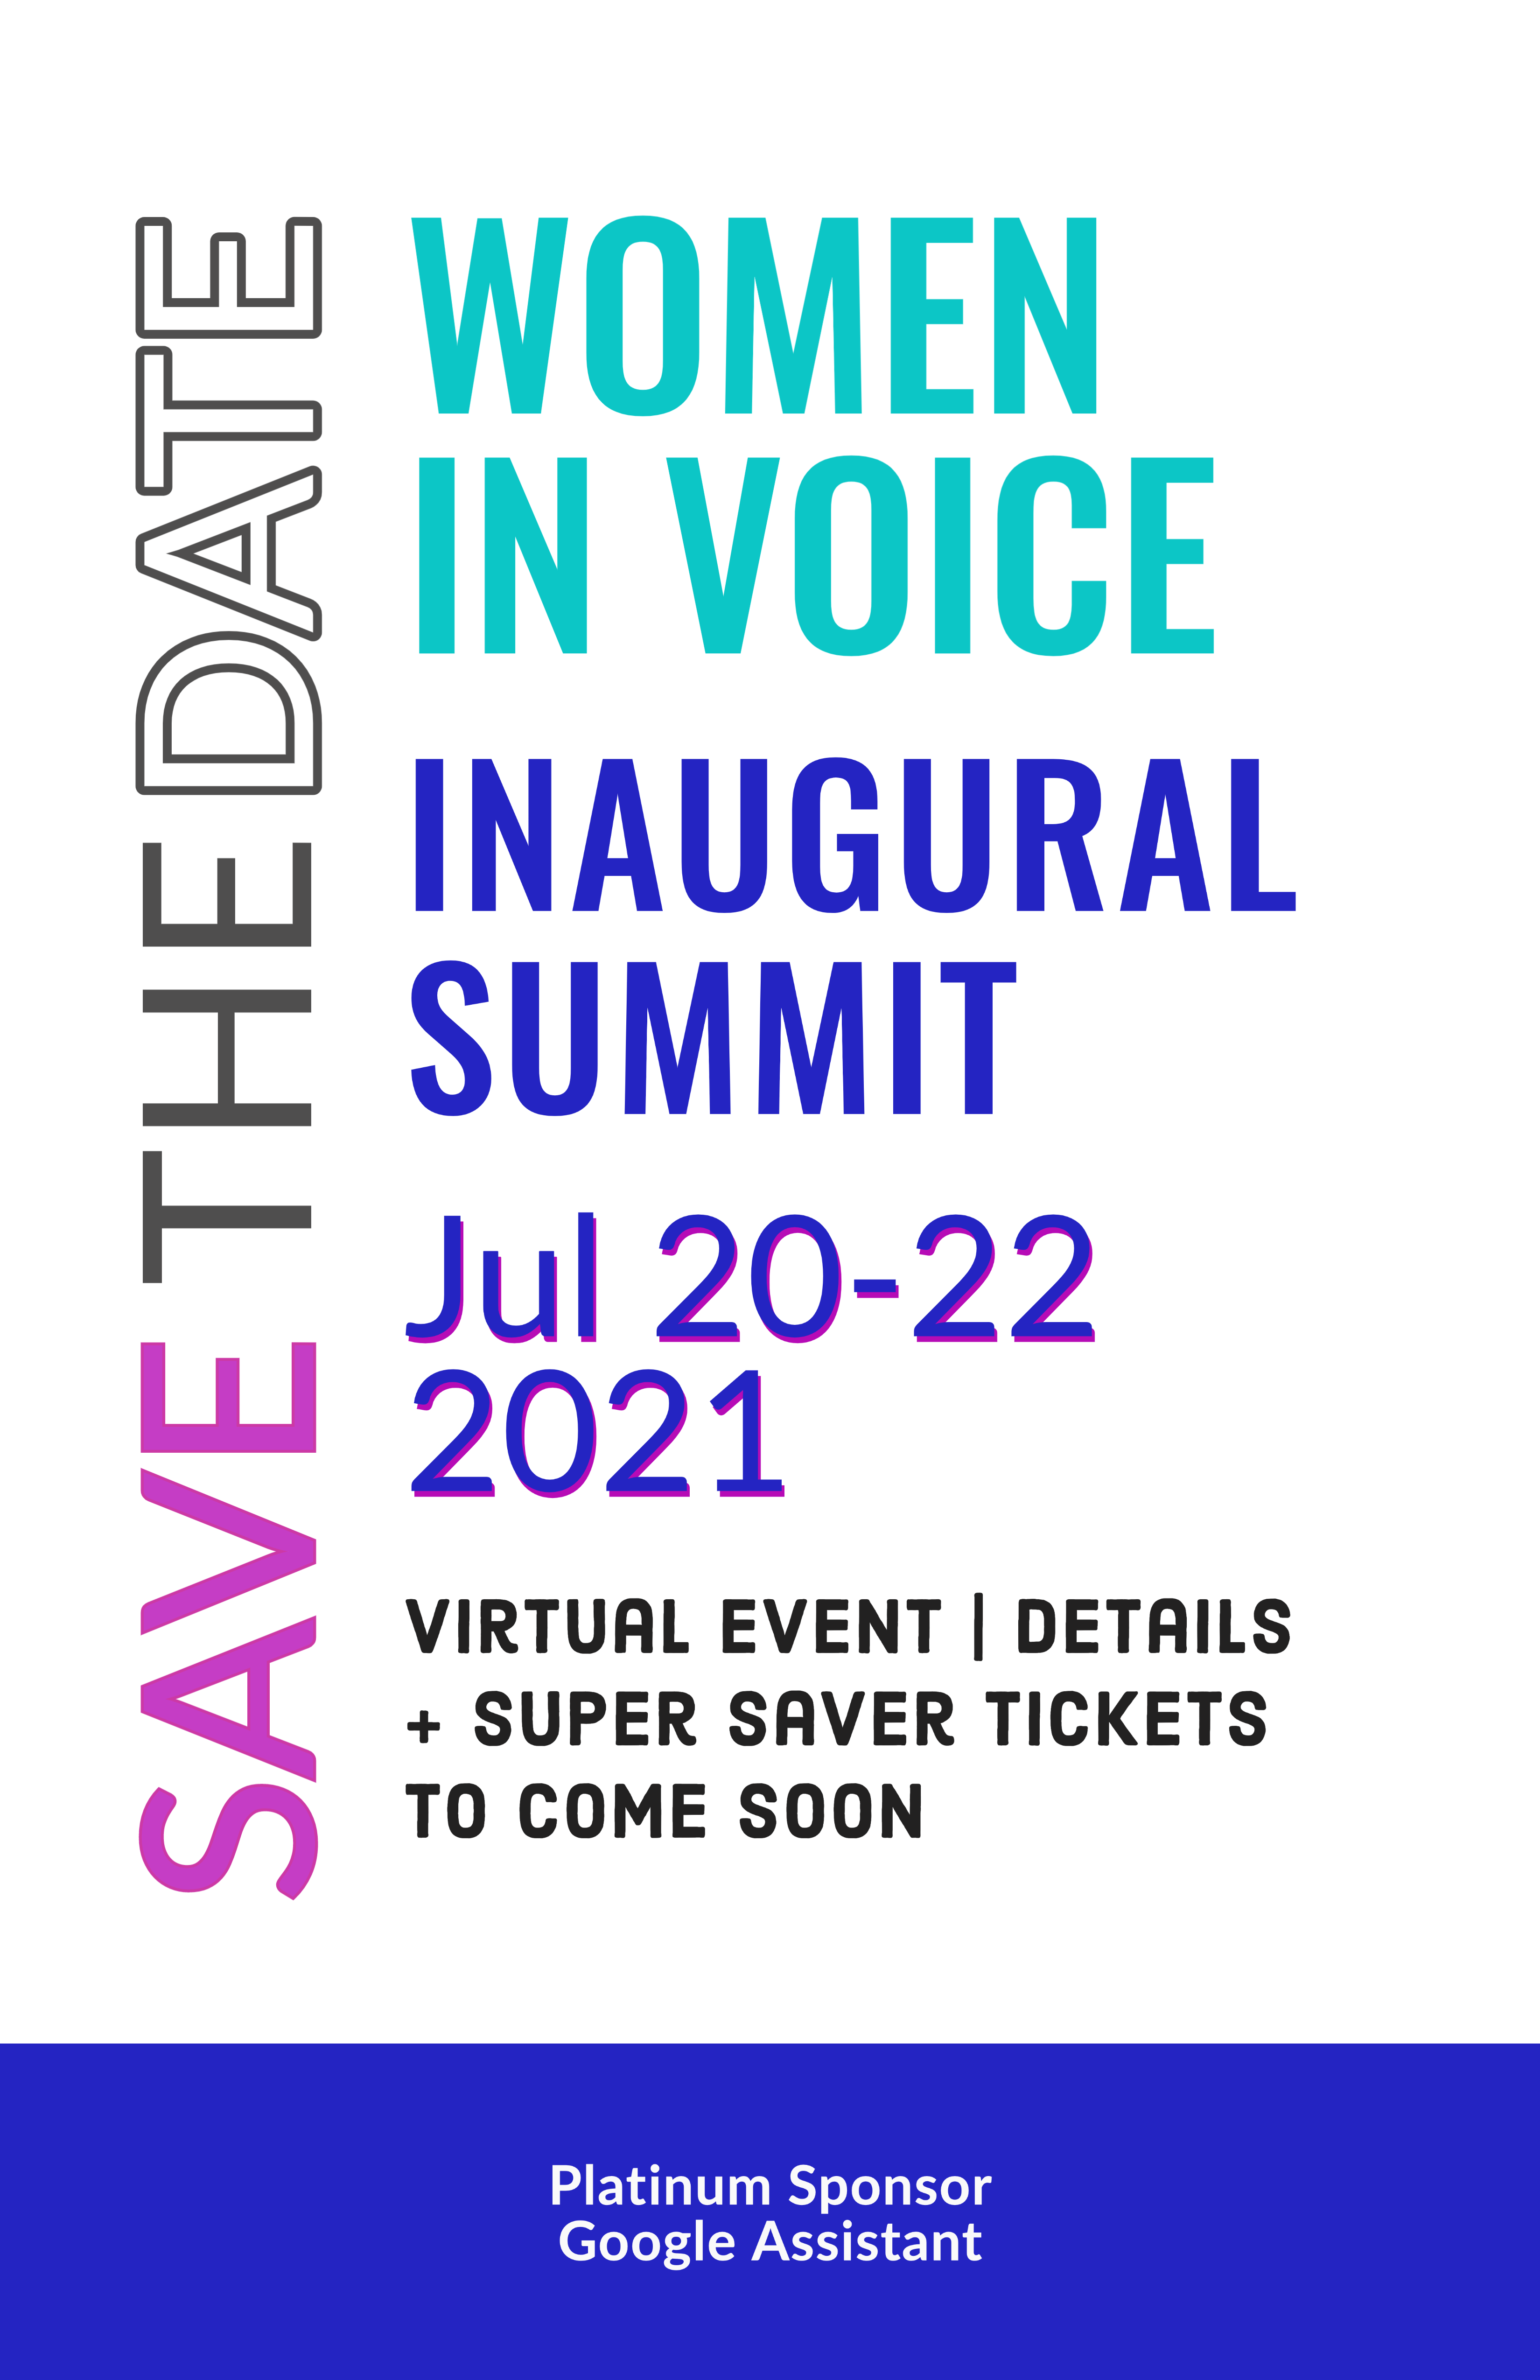 Save the Date: Women in Voice Inaugural Summit, July 20-22, 2021 | Sponsor: Google Assistant